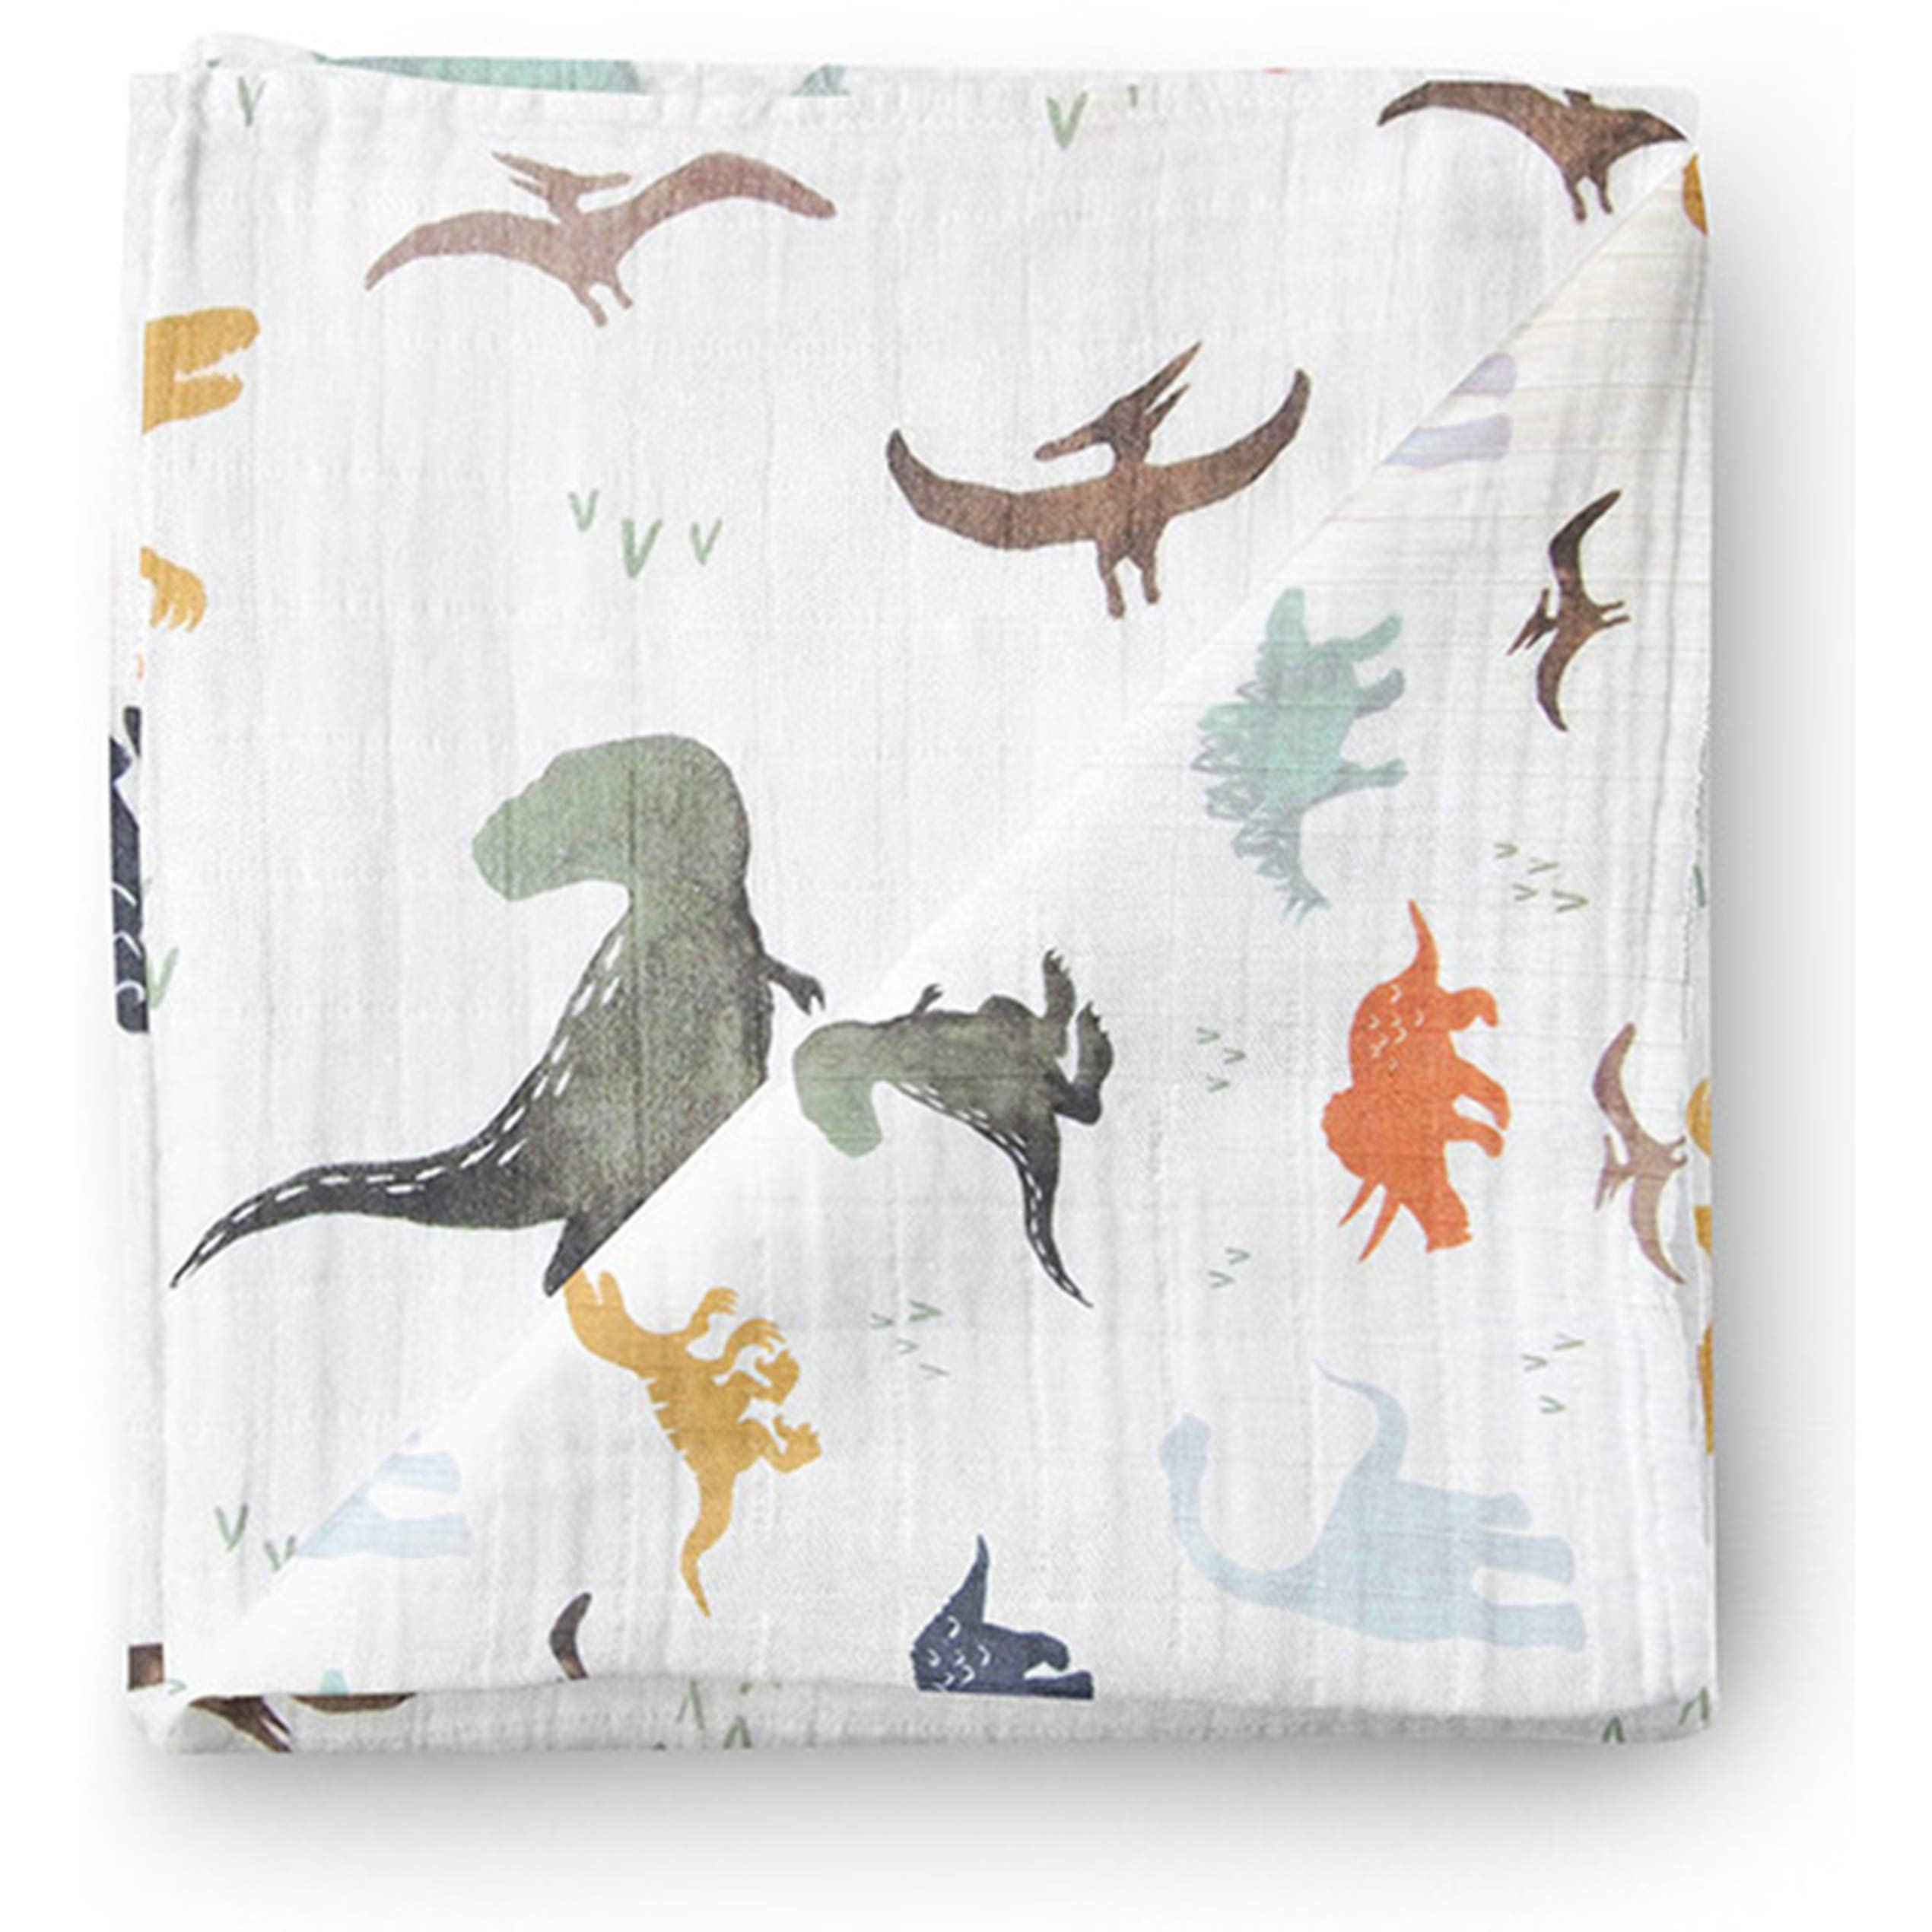 Aenne Baby Muslin Baby Swaddle Blanket Dinosaur Dino Print, Baby Shower Gifts, Luxurious, Soft and Silky, 70% Bamboo 30% Cotton 47x47inch (1pack), Baby boy Nursing Cover, wrap, Burp Cloth by Aenne Baby